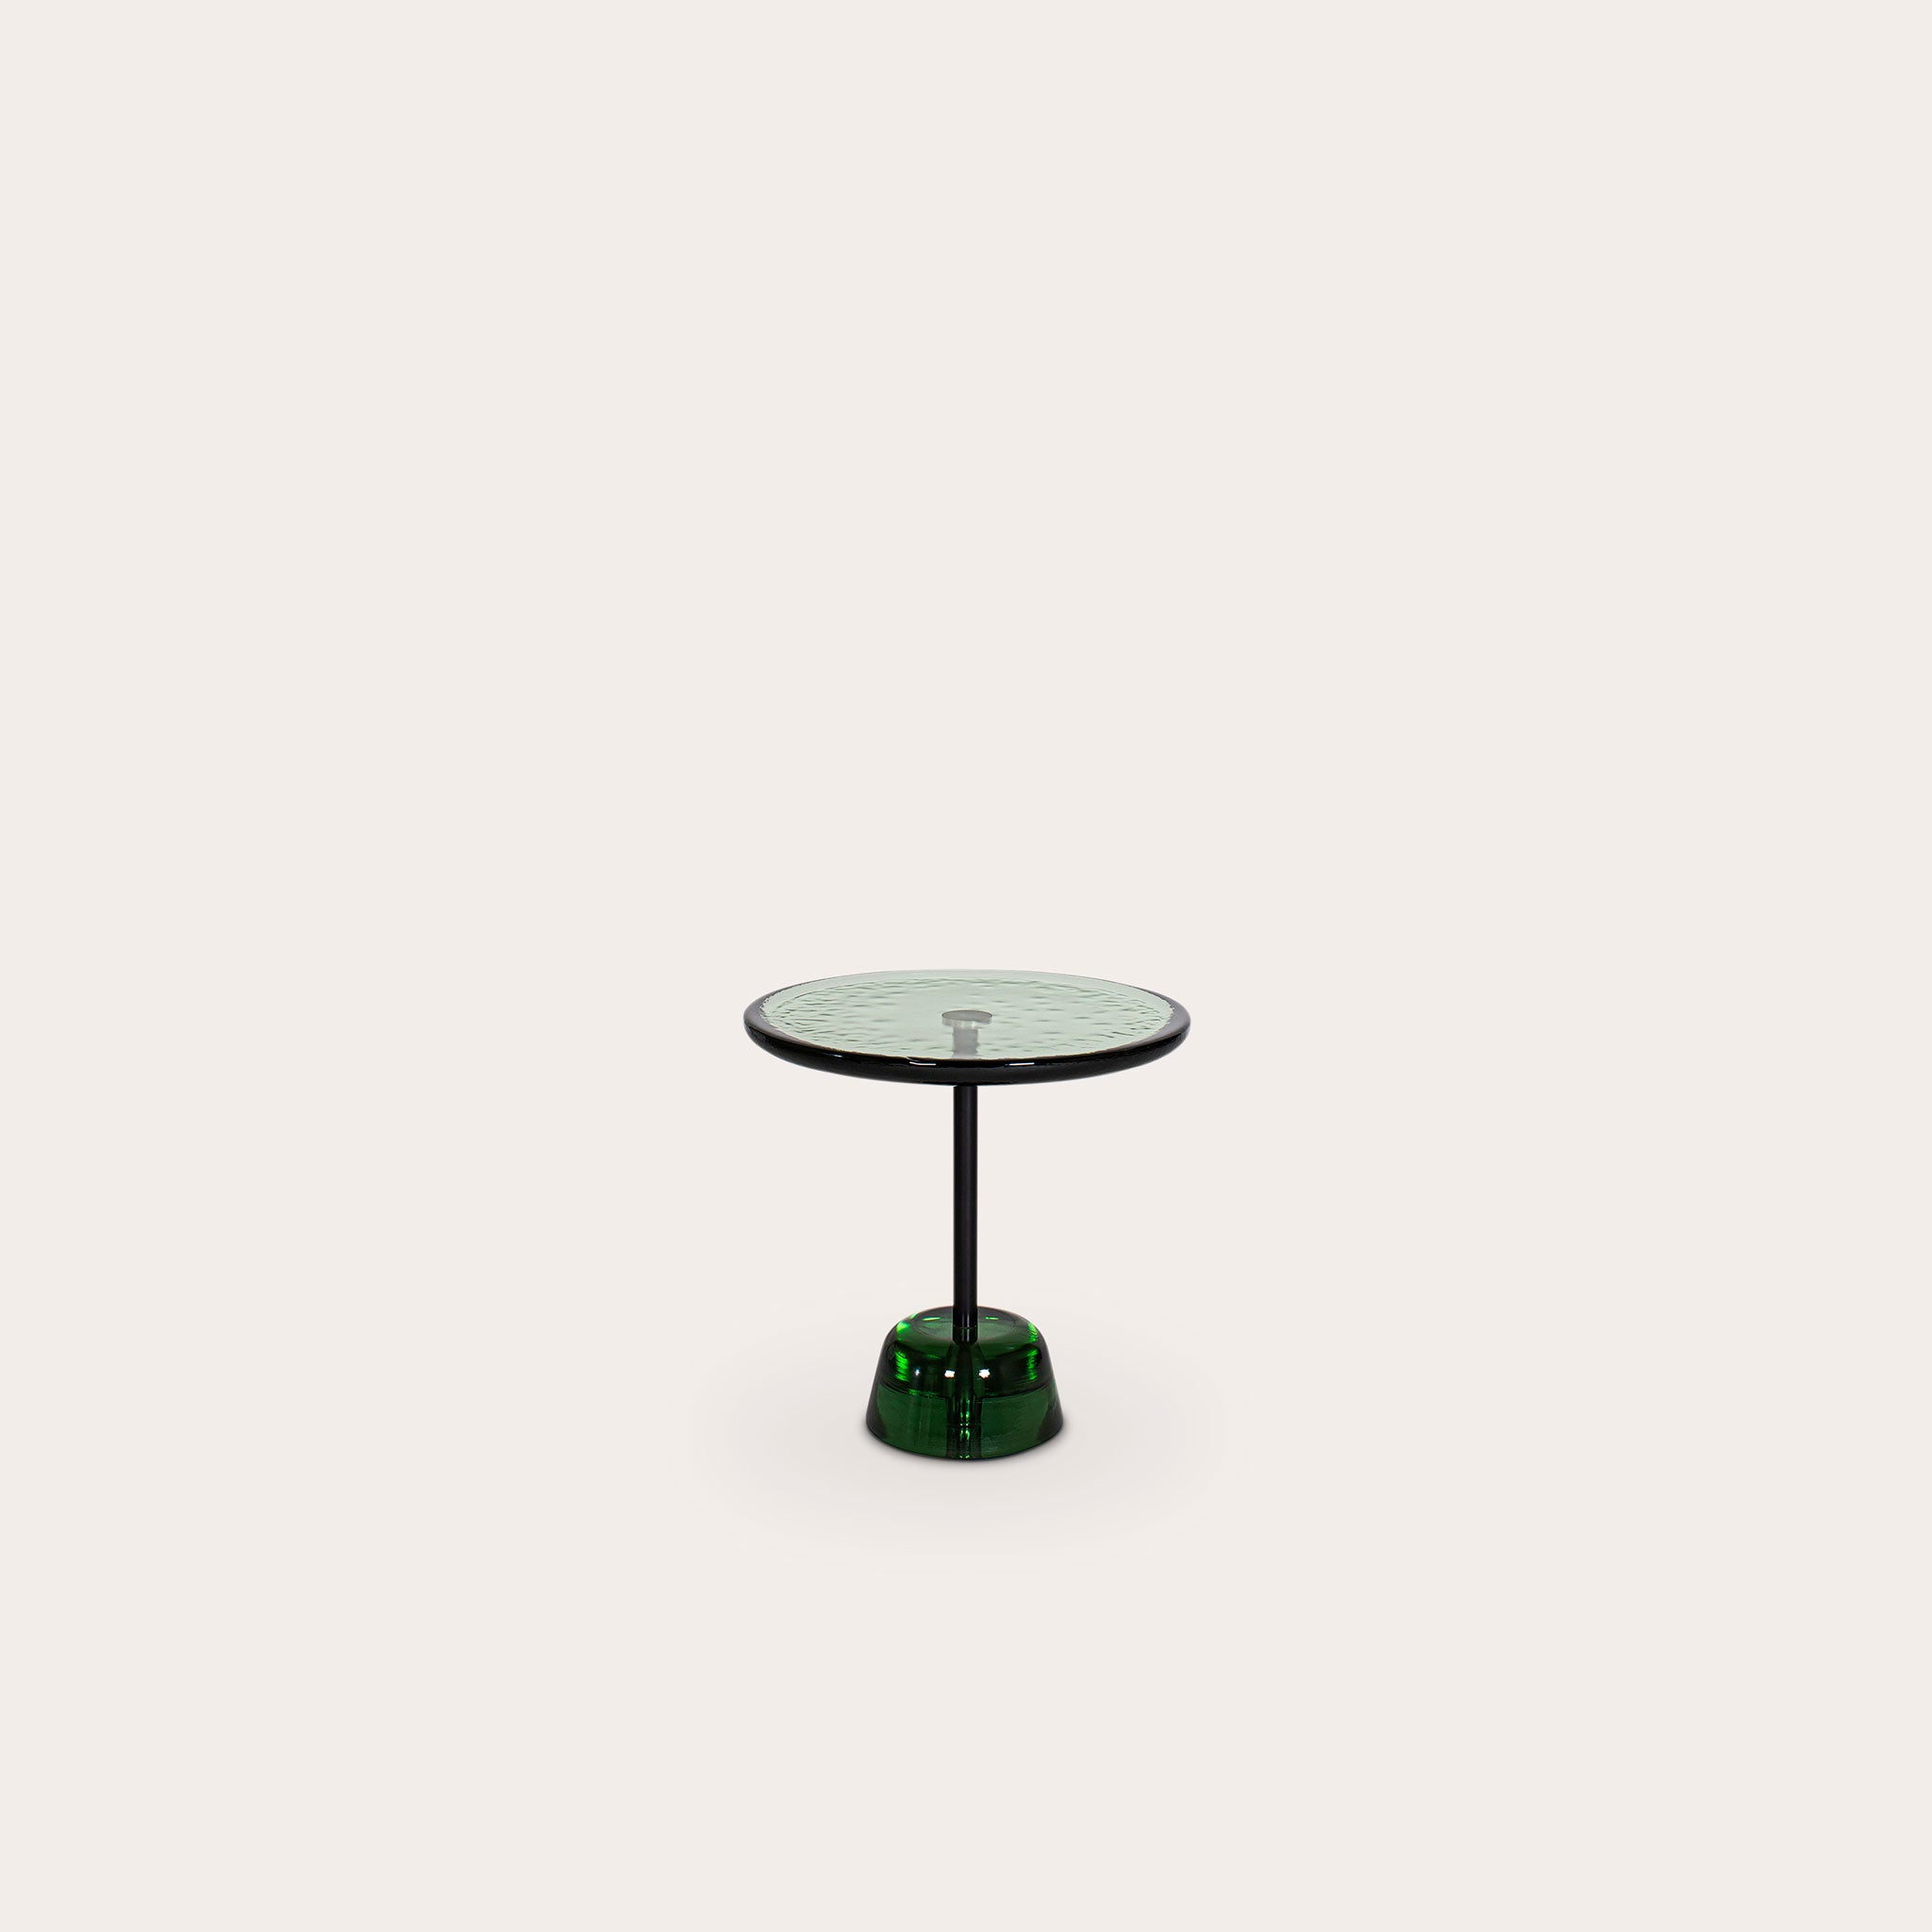 Pina Low Side Tables Sebastian Herkner Designer Furniture Sku: 747-230-10079